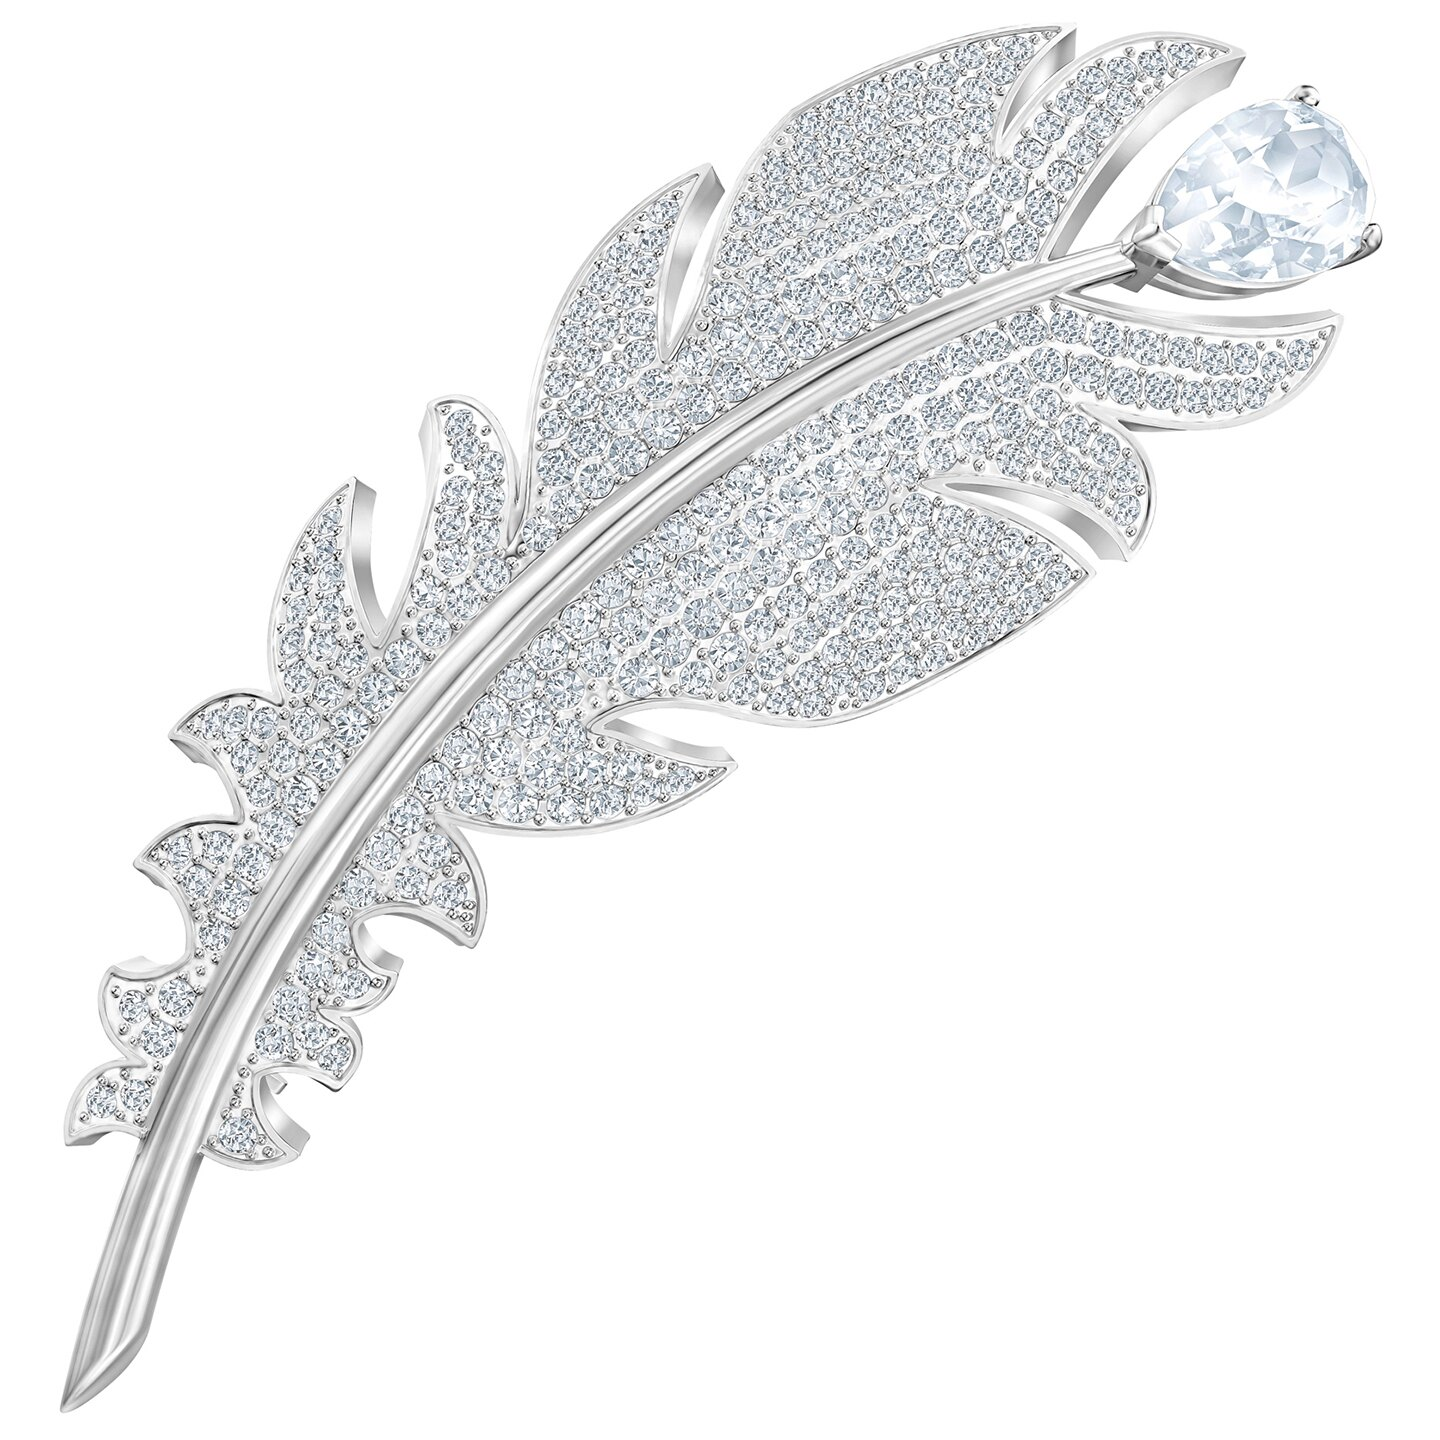 Swarovski Nice Brooch - White - Rhodium Plated - 5495417